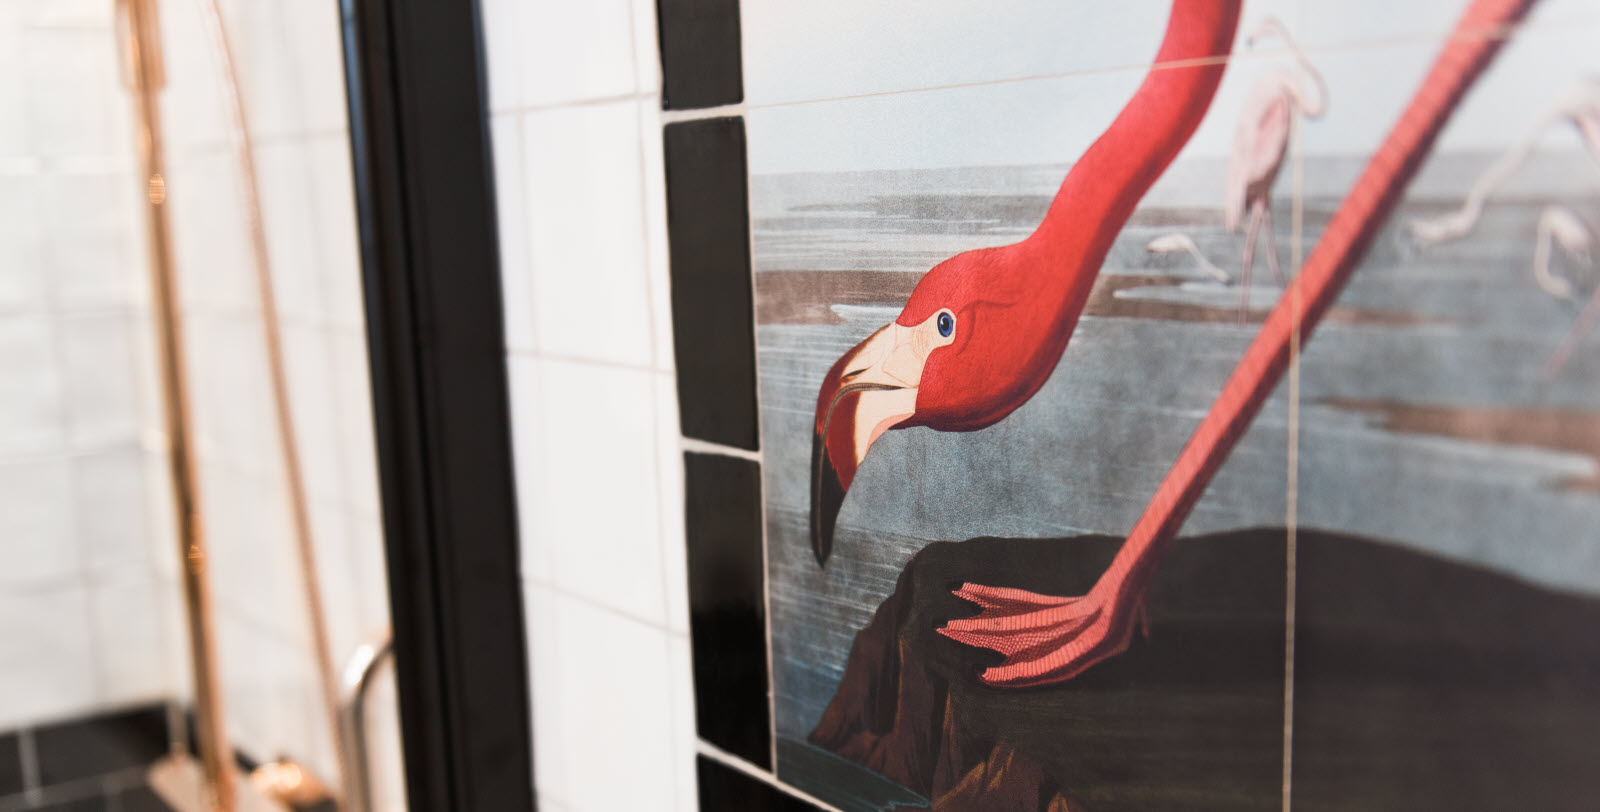 Interior decoration in the bathroom. Picture on the wall, flamingo.